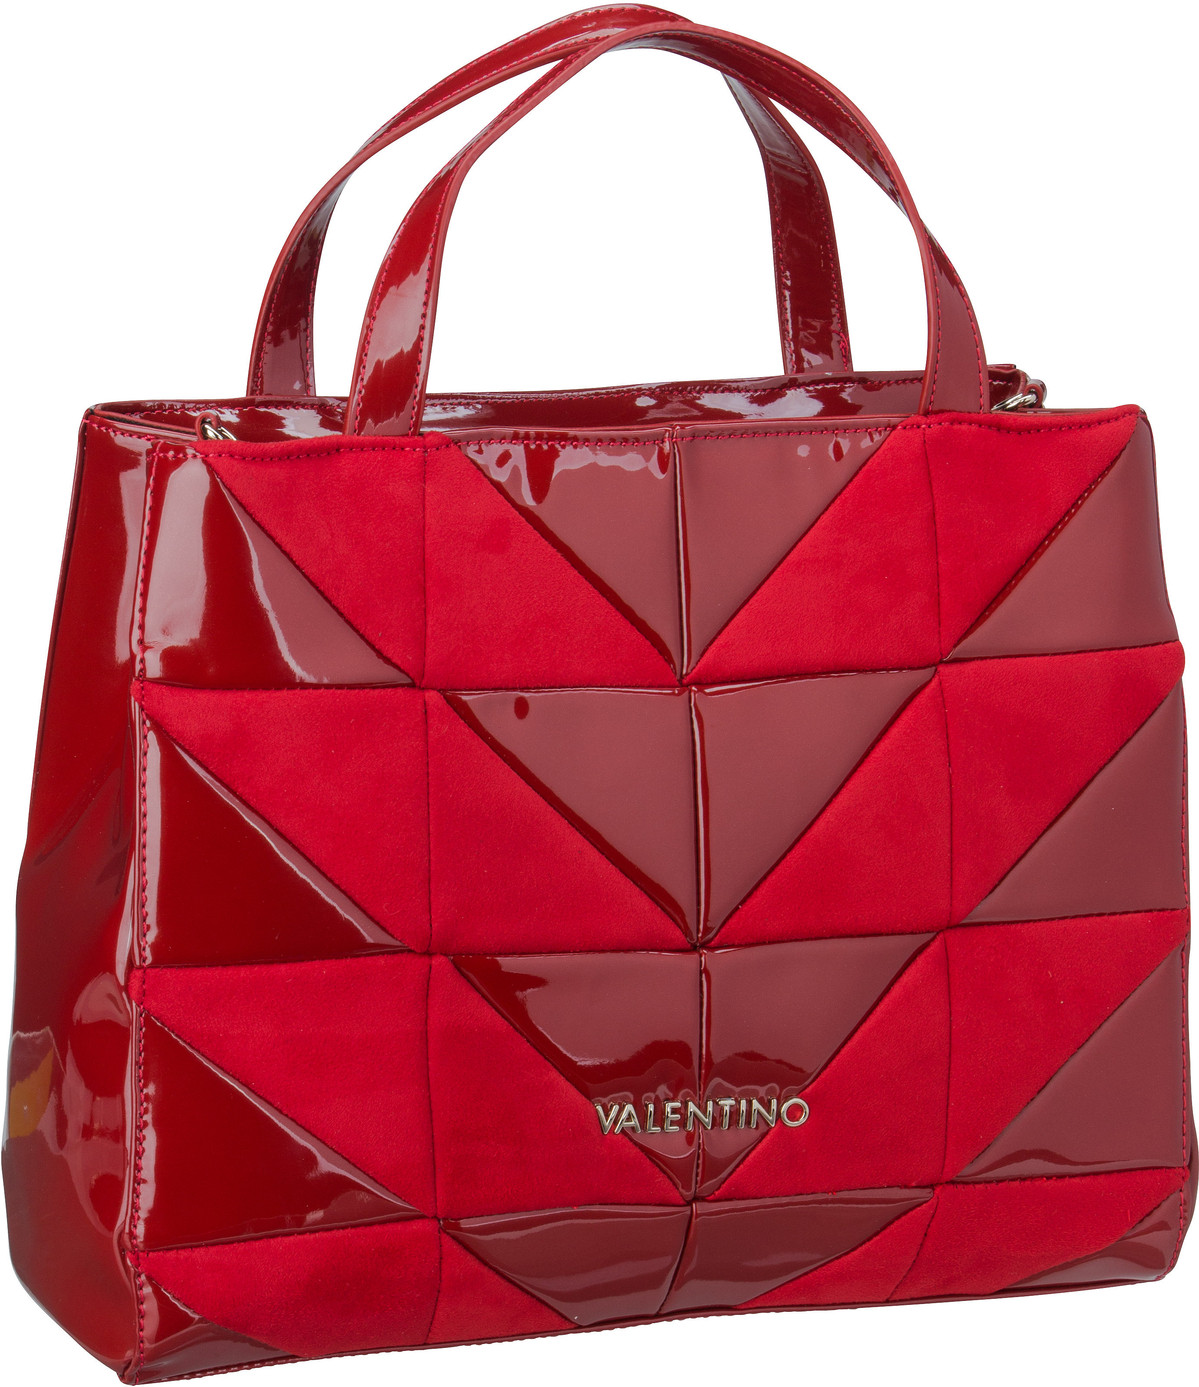 Handtasche Cymbal Shopping 401 Rosso